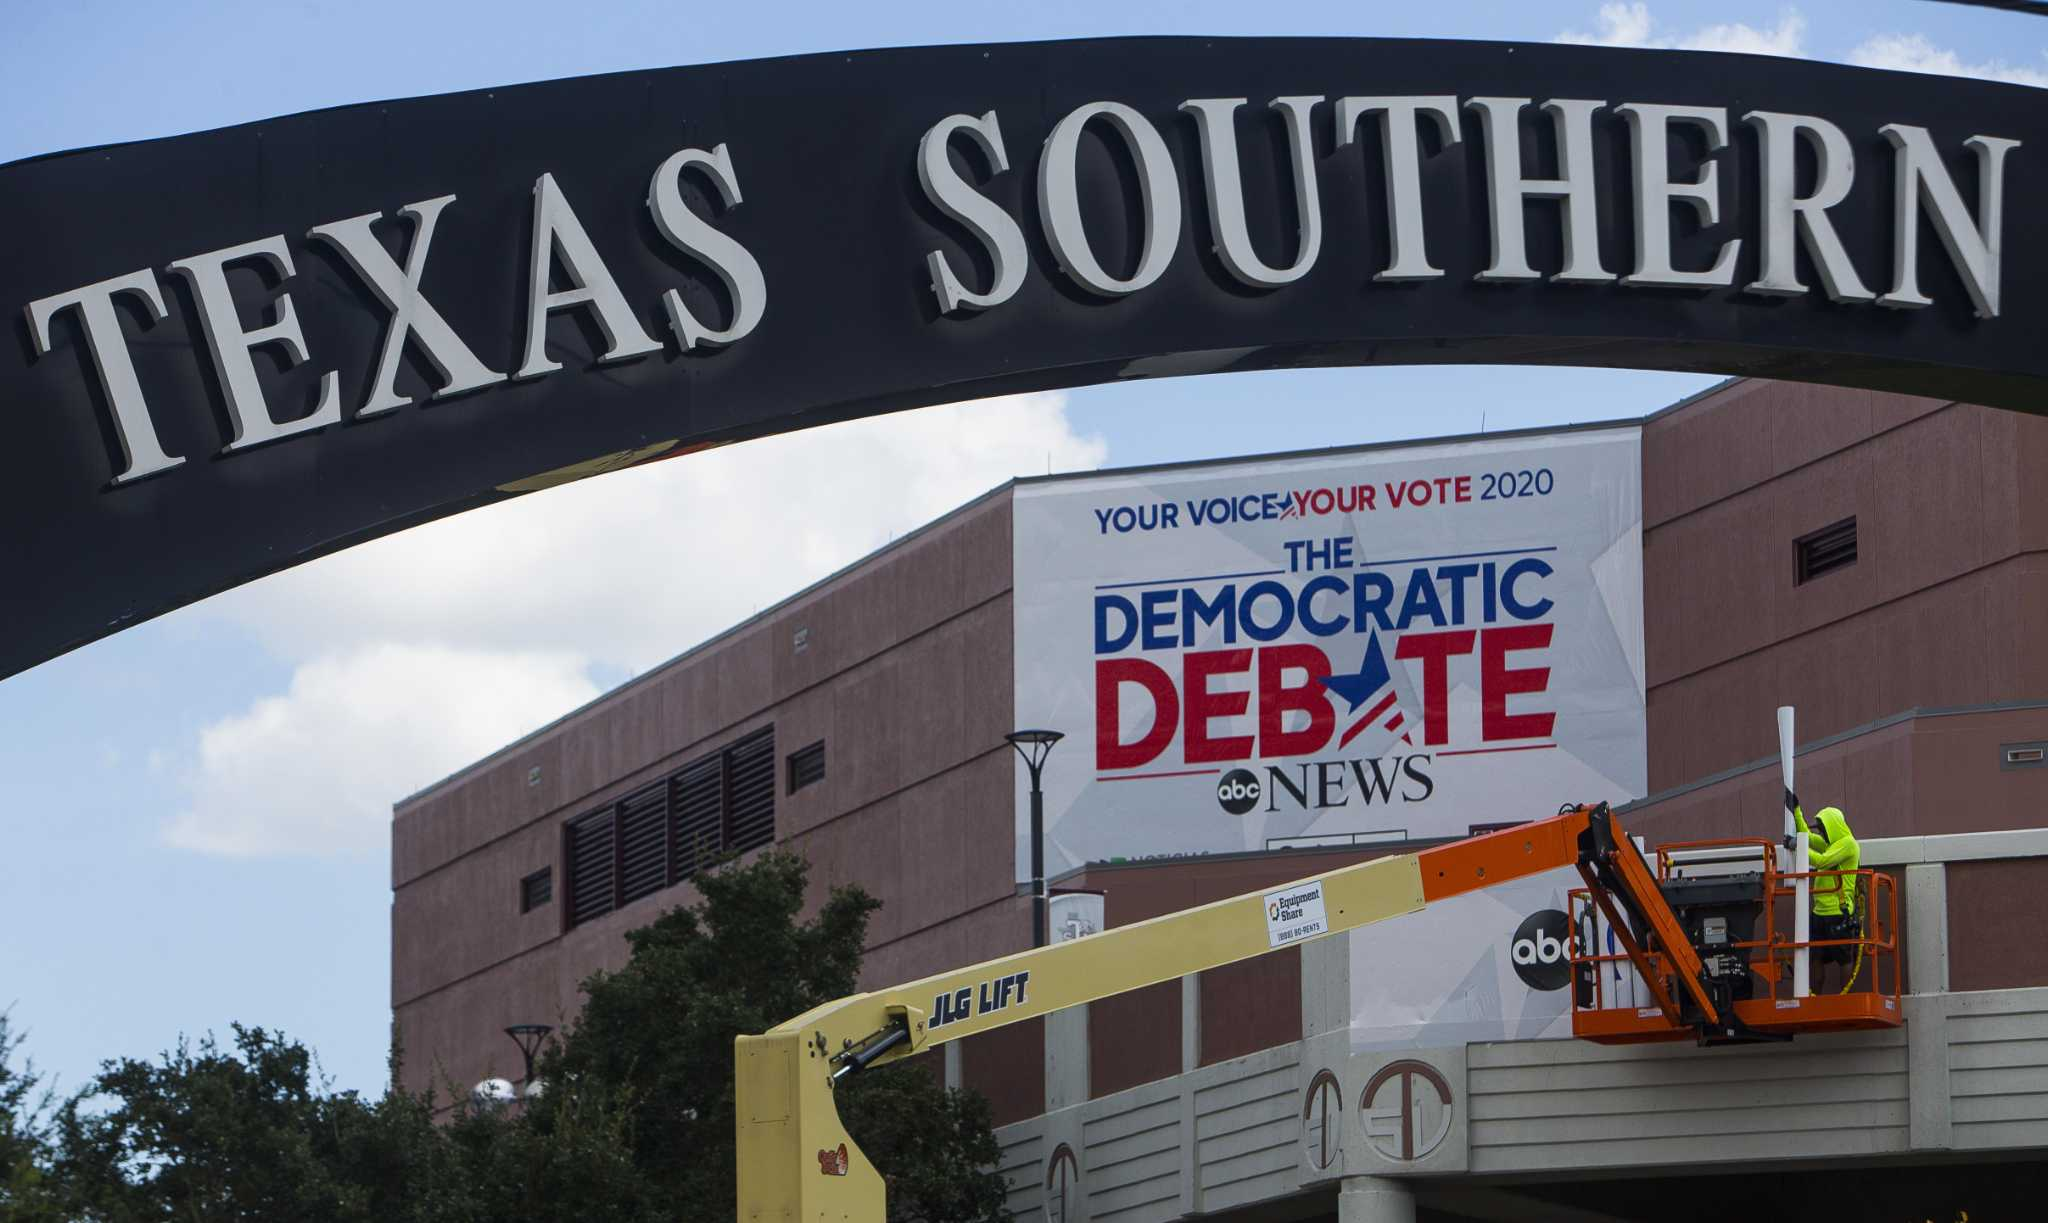 Democratic debate at Texas Southern University will cause road closures, traffic headaches